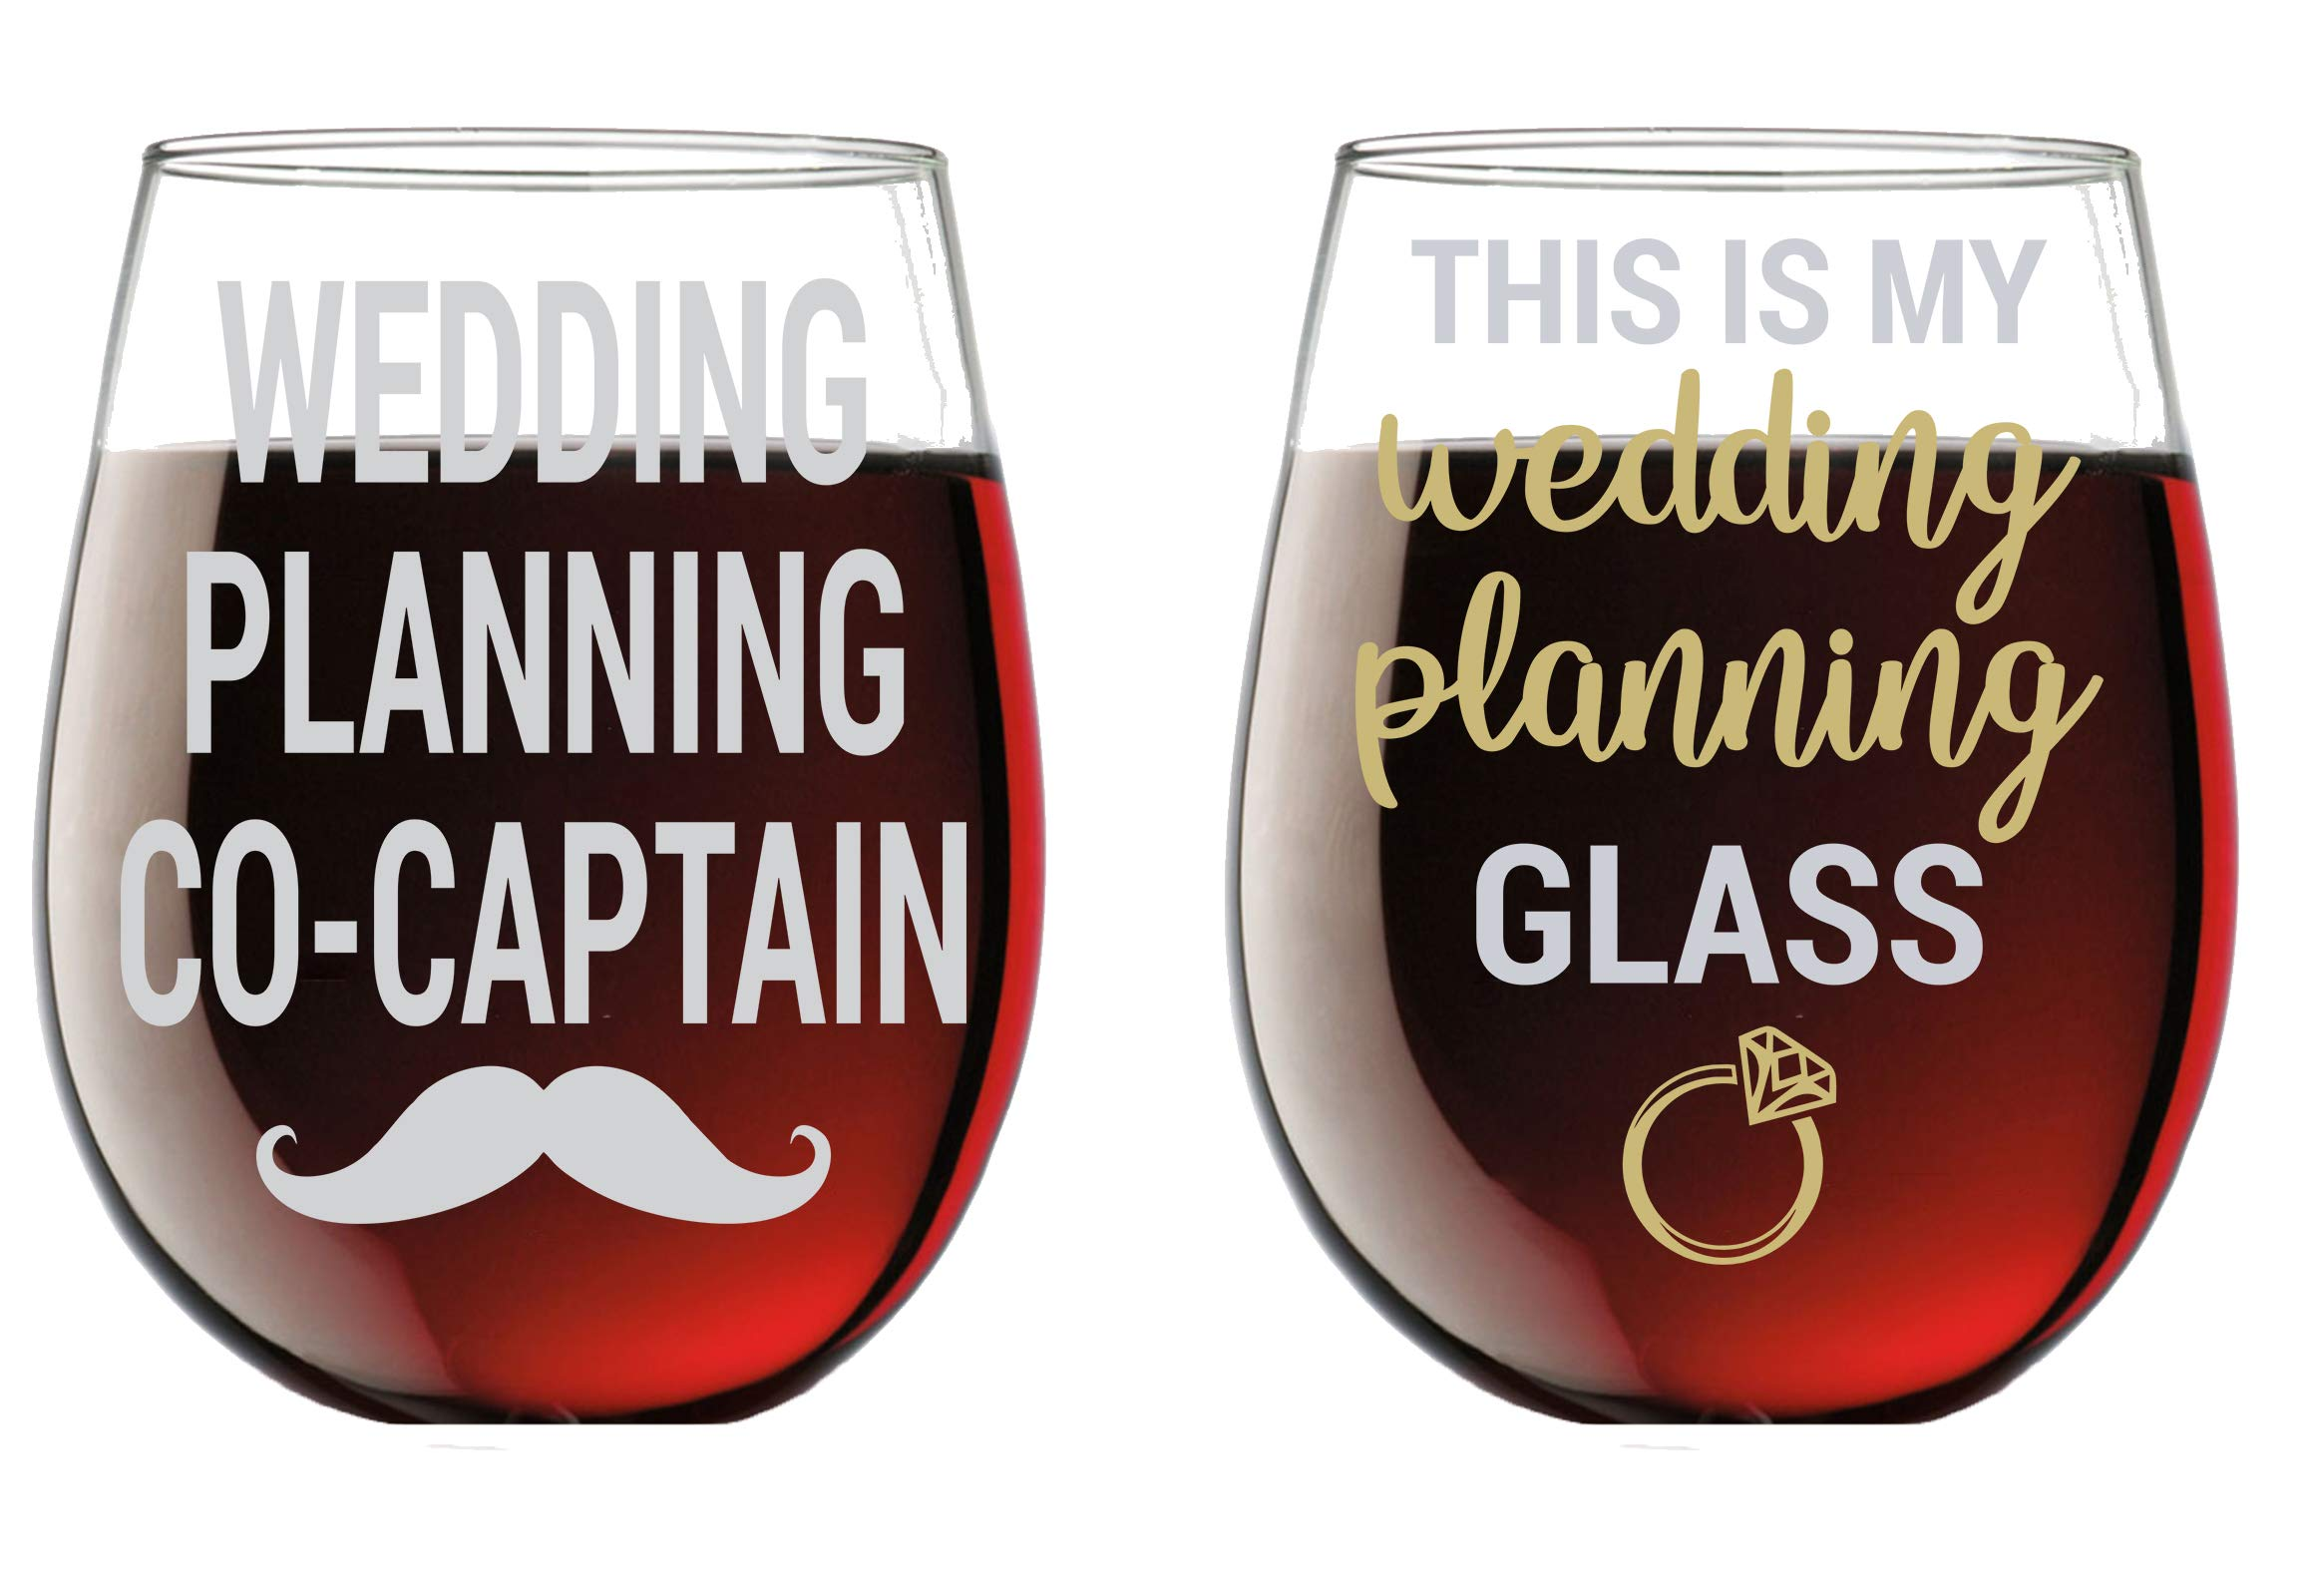 This is My Wedding Planning Glass/Planning Co-Captain - Funny 15oz Crystal Wine Glass - Stemless Wine Glass Couples Sets - Perfect idea for Bridal and Engagement Gifts